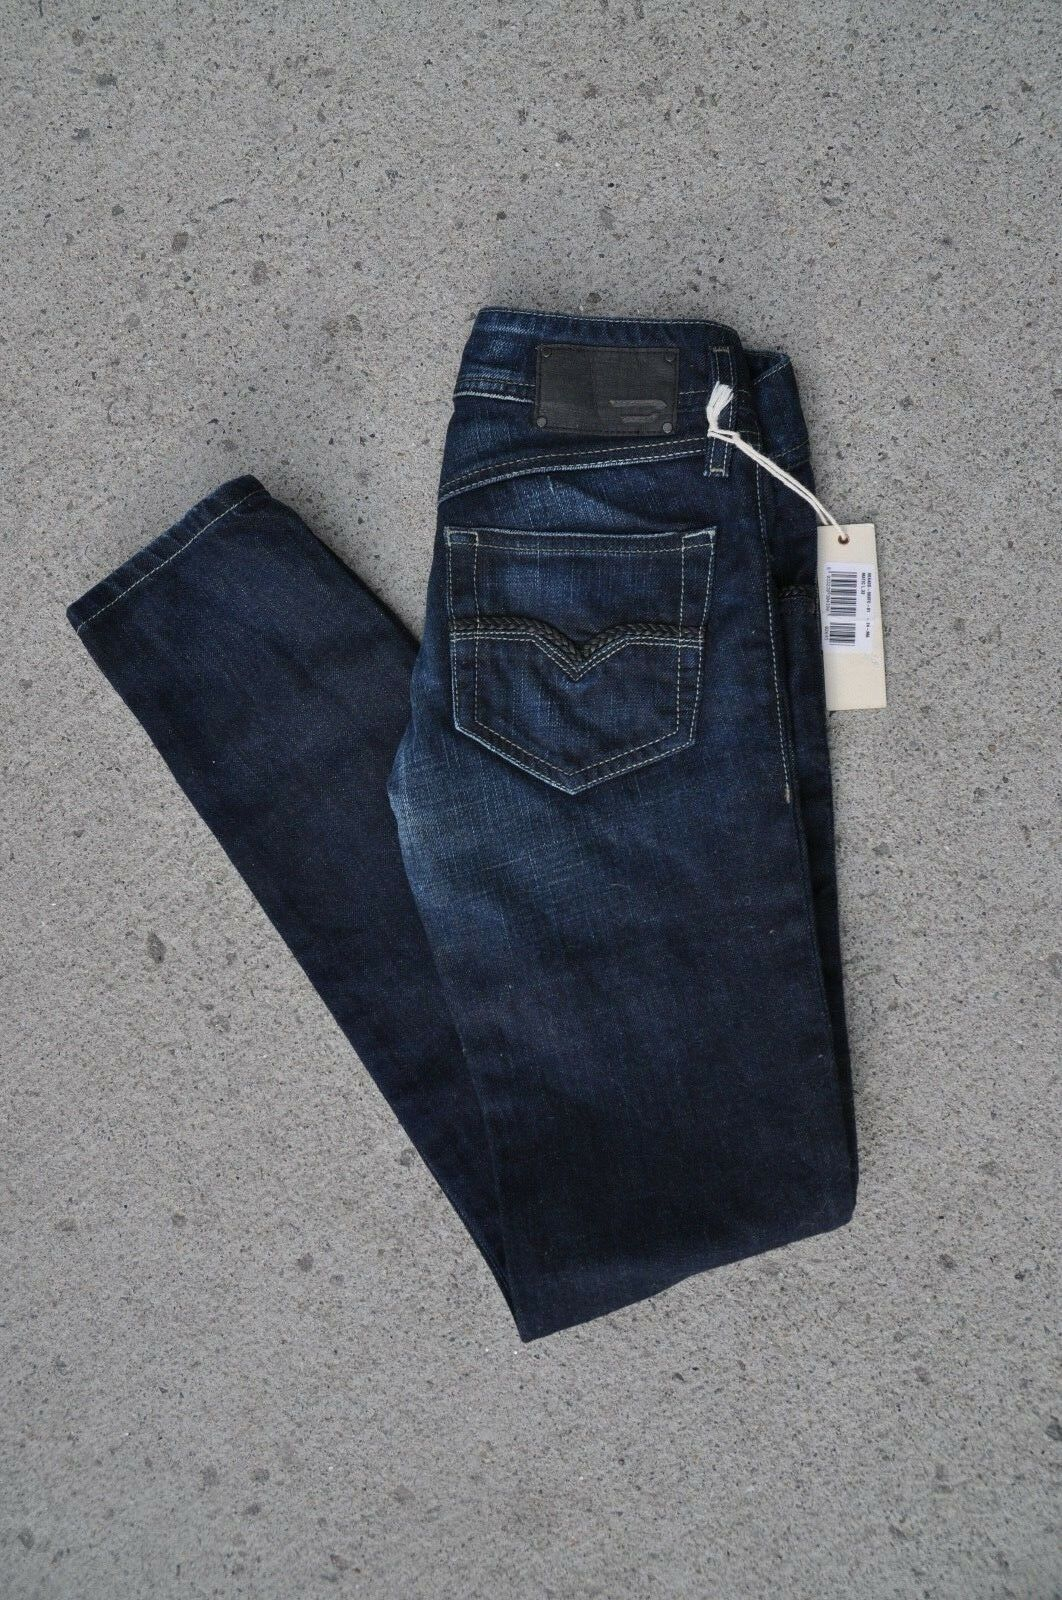 228 NWT Diesel Matic Womens Dark Wash Denim Jeans Faux Leather Studded 24 x 32